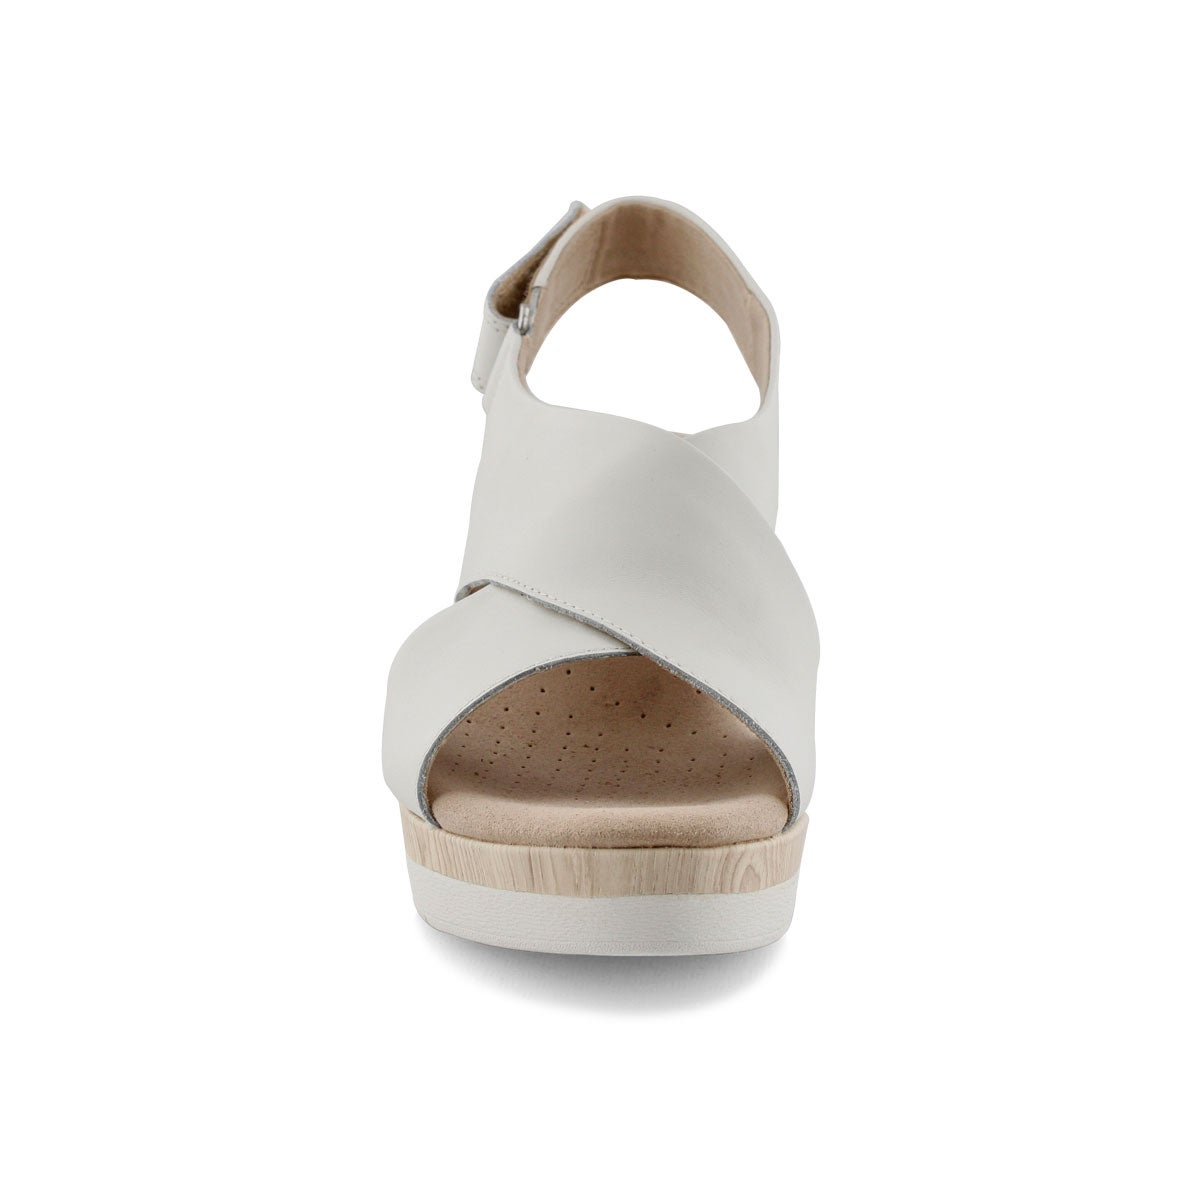 Women's CAMMY PEARL white wedge sandals